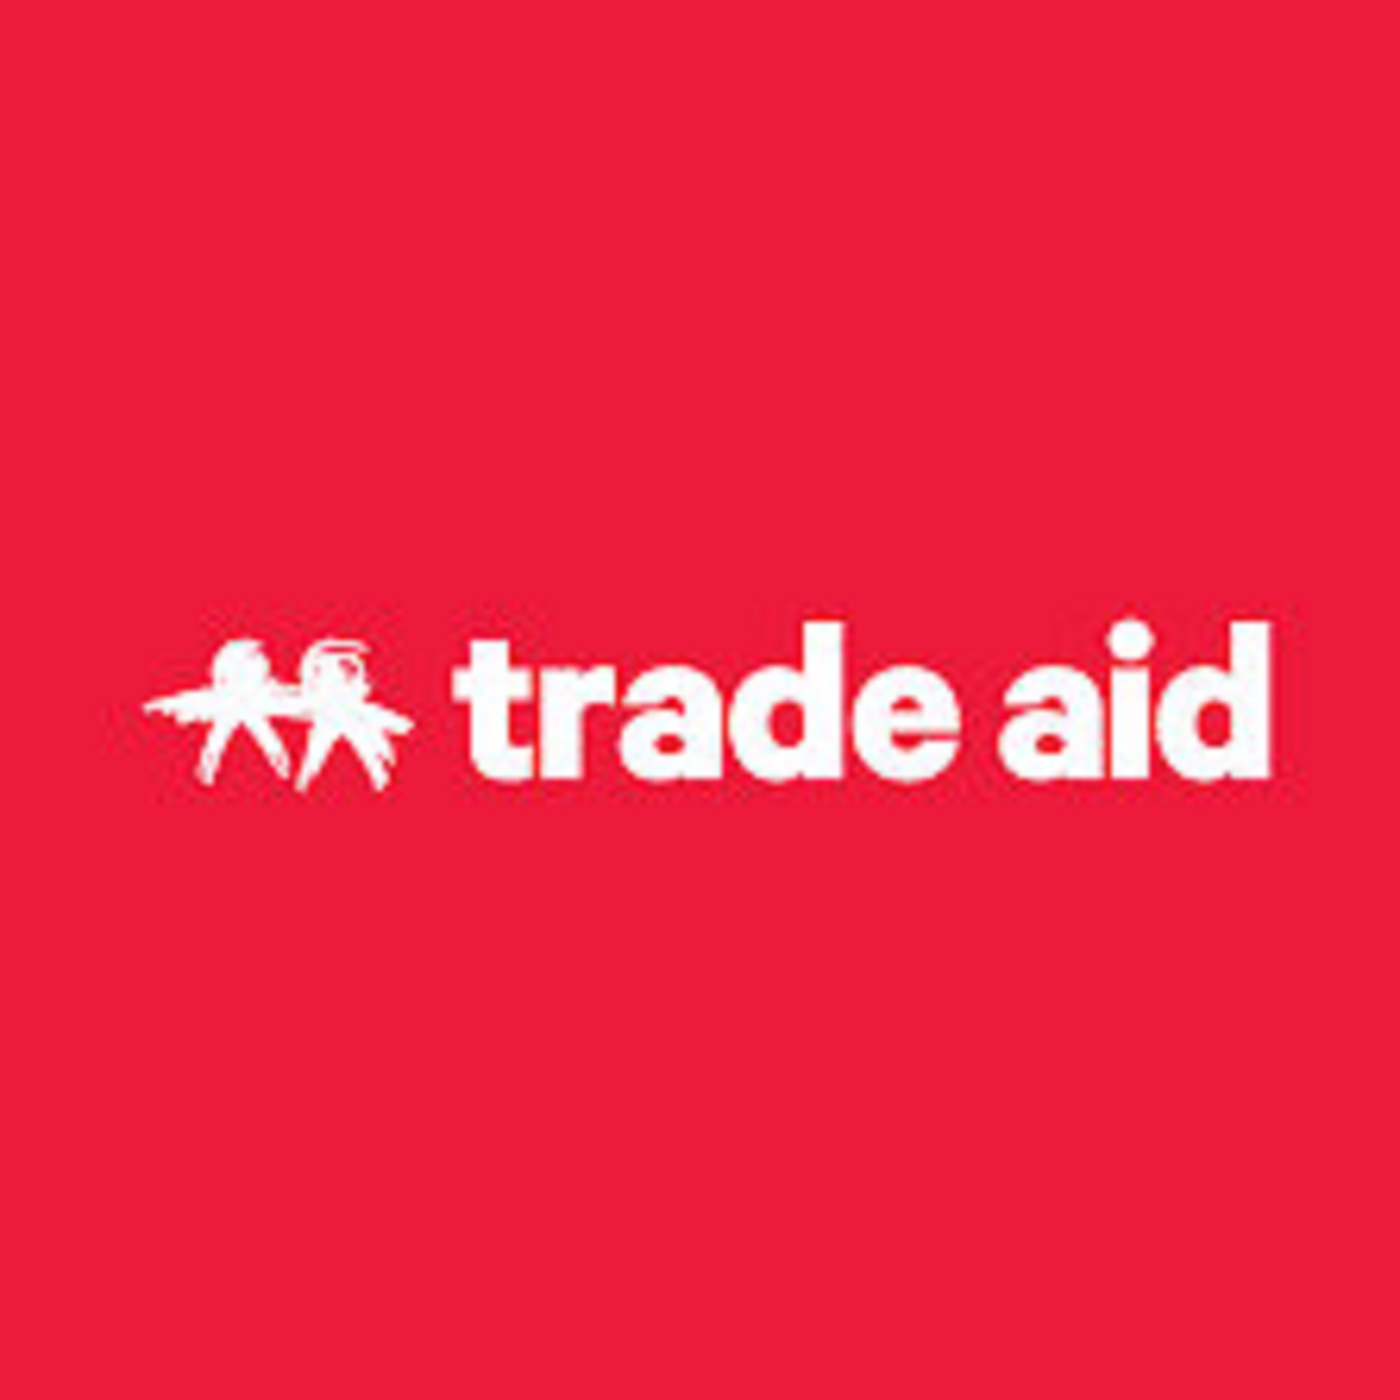 https://cdn.accessradio.org/StationFolder/kidnappers/Images/Trade Aid1.png